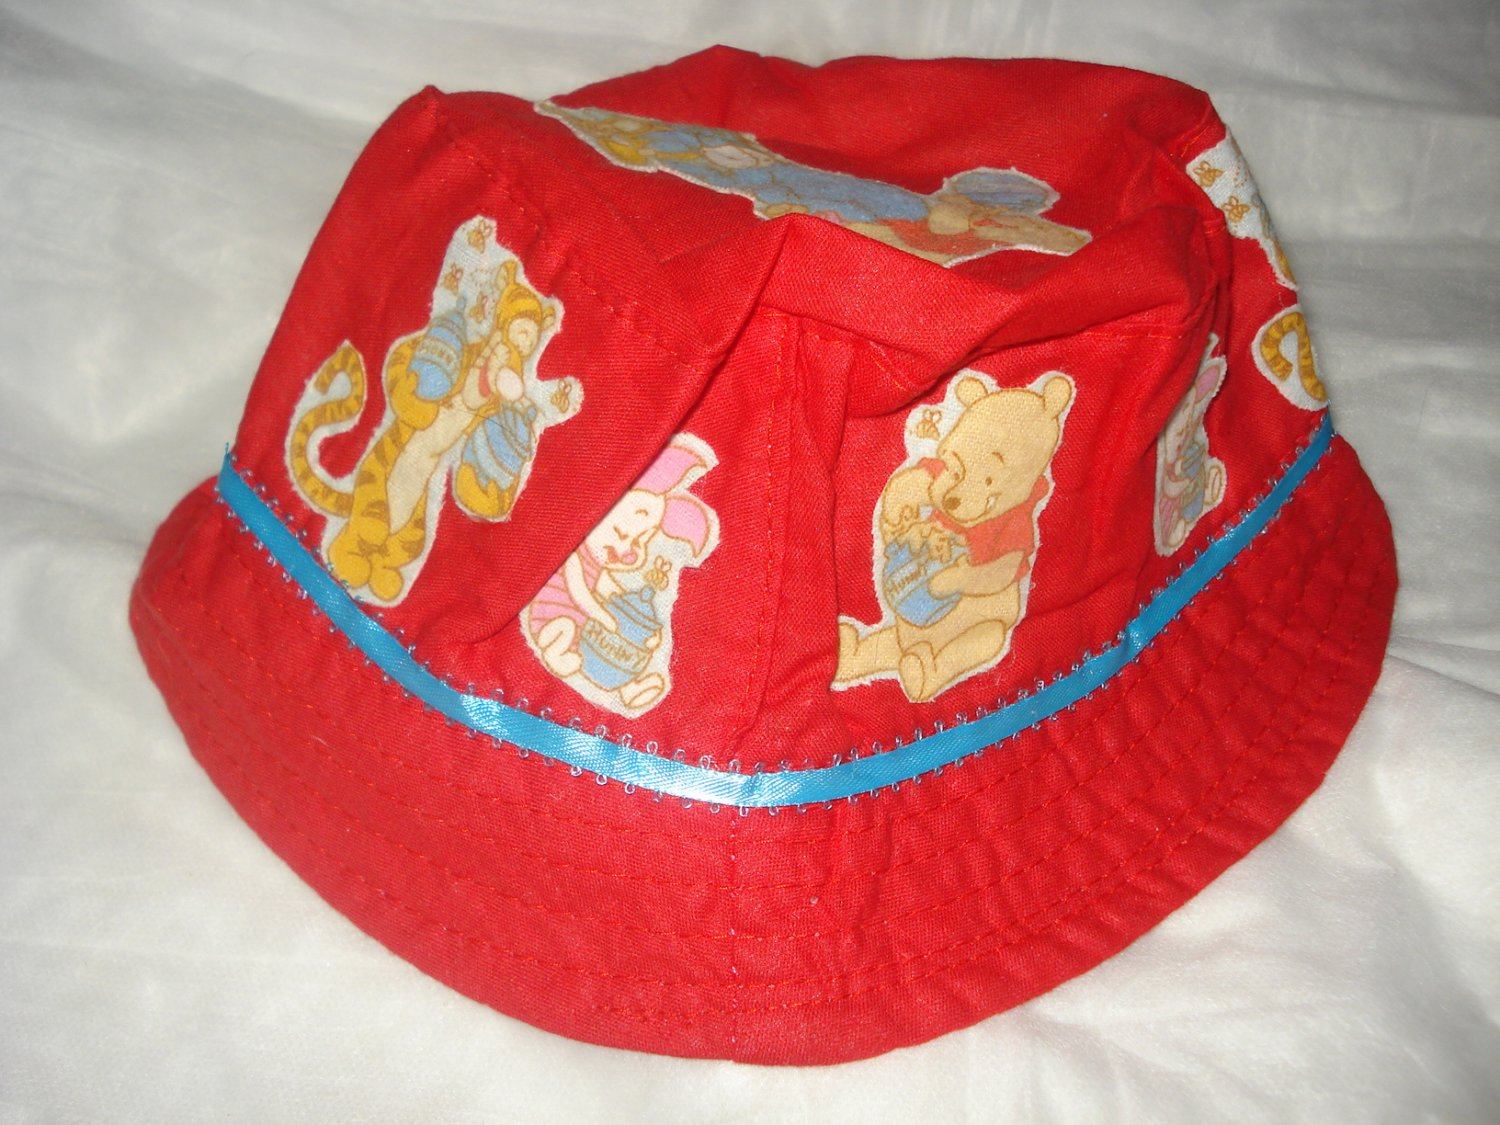 Baby / toddler hat with appliqued Winnie The Pooh and Friends - ekho1f